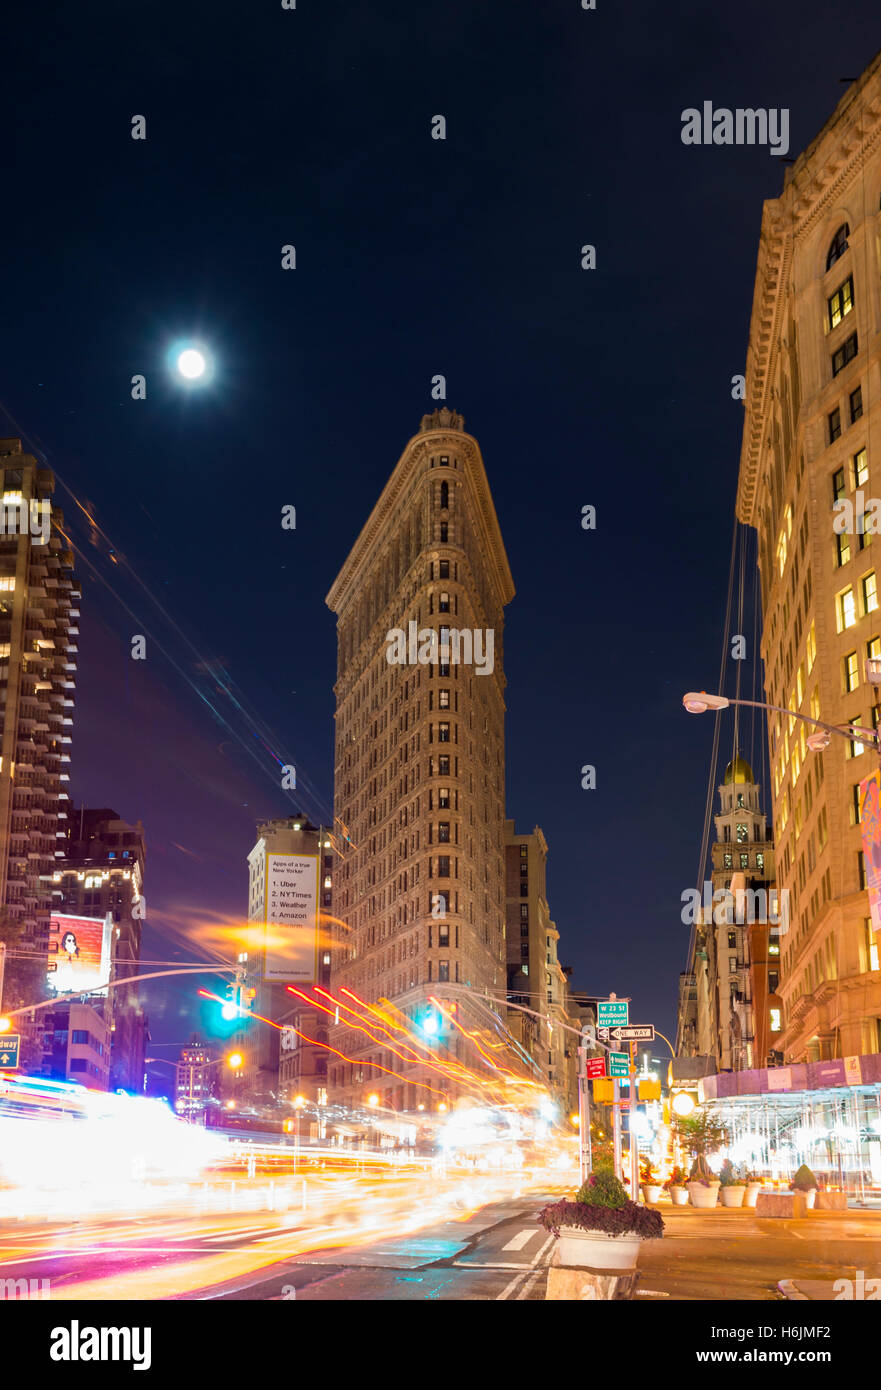 Flatiron Building and 5th Avenue at night with headlight trails, New York. - Stock Image